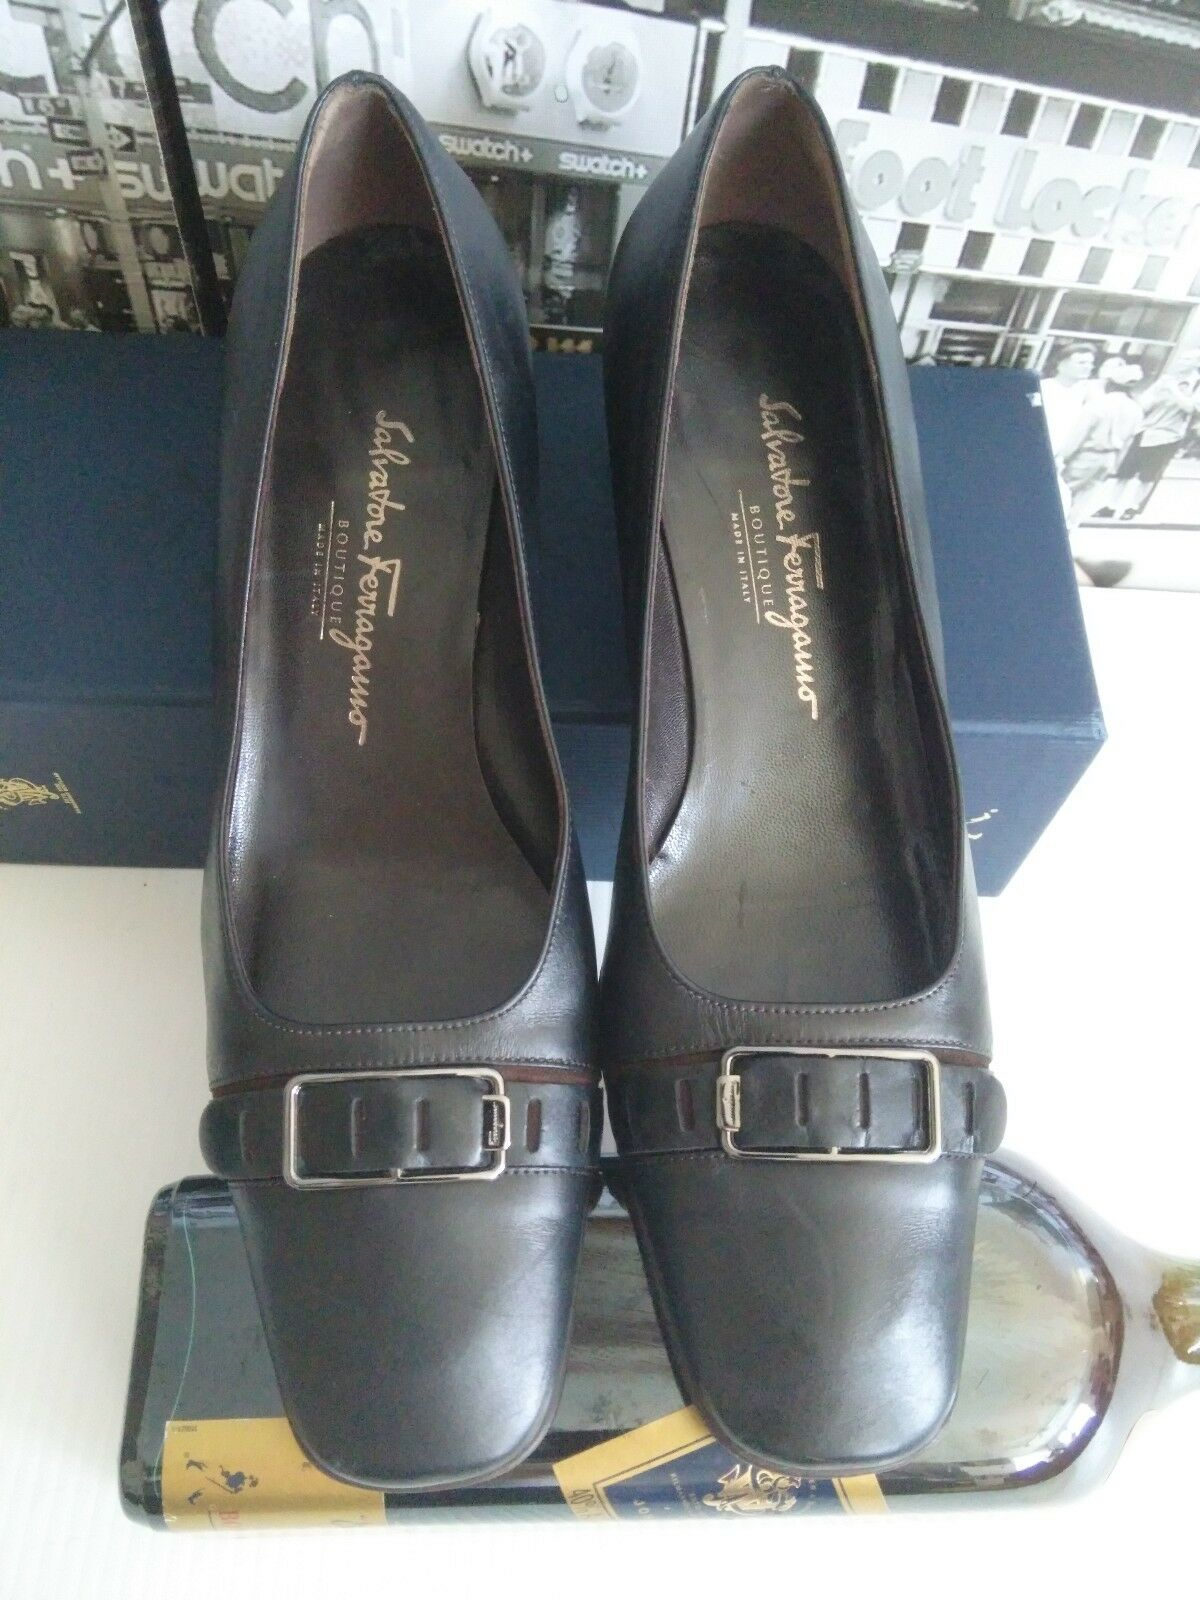 Gorgeous Salvatore Ferragamo Black  Leather Platform Block Heel Pump 8.5 US 8.5 Pump 725770